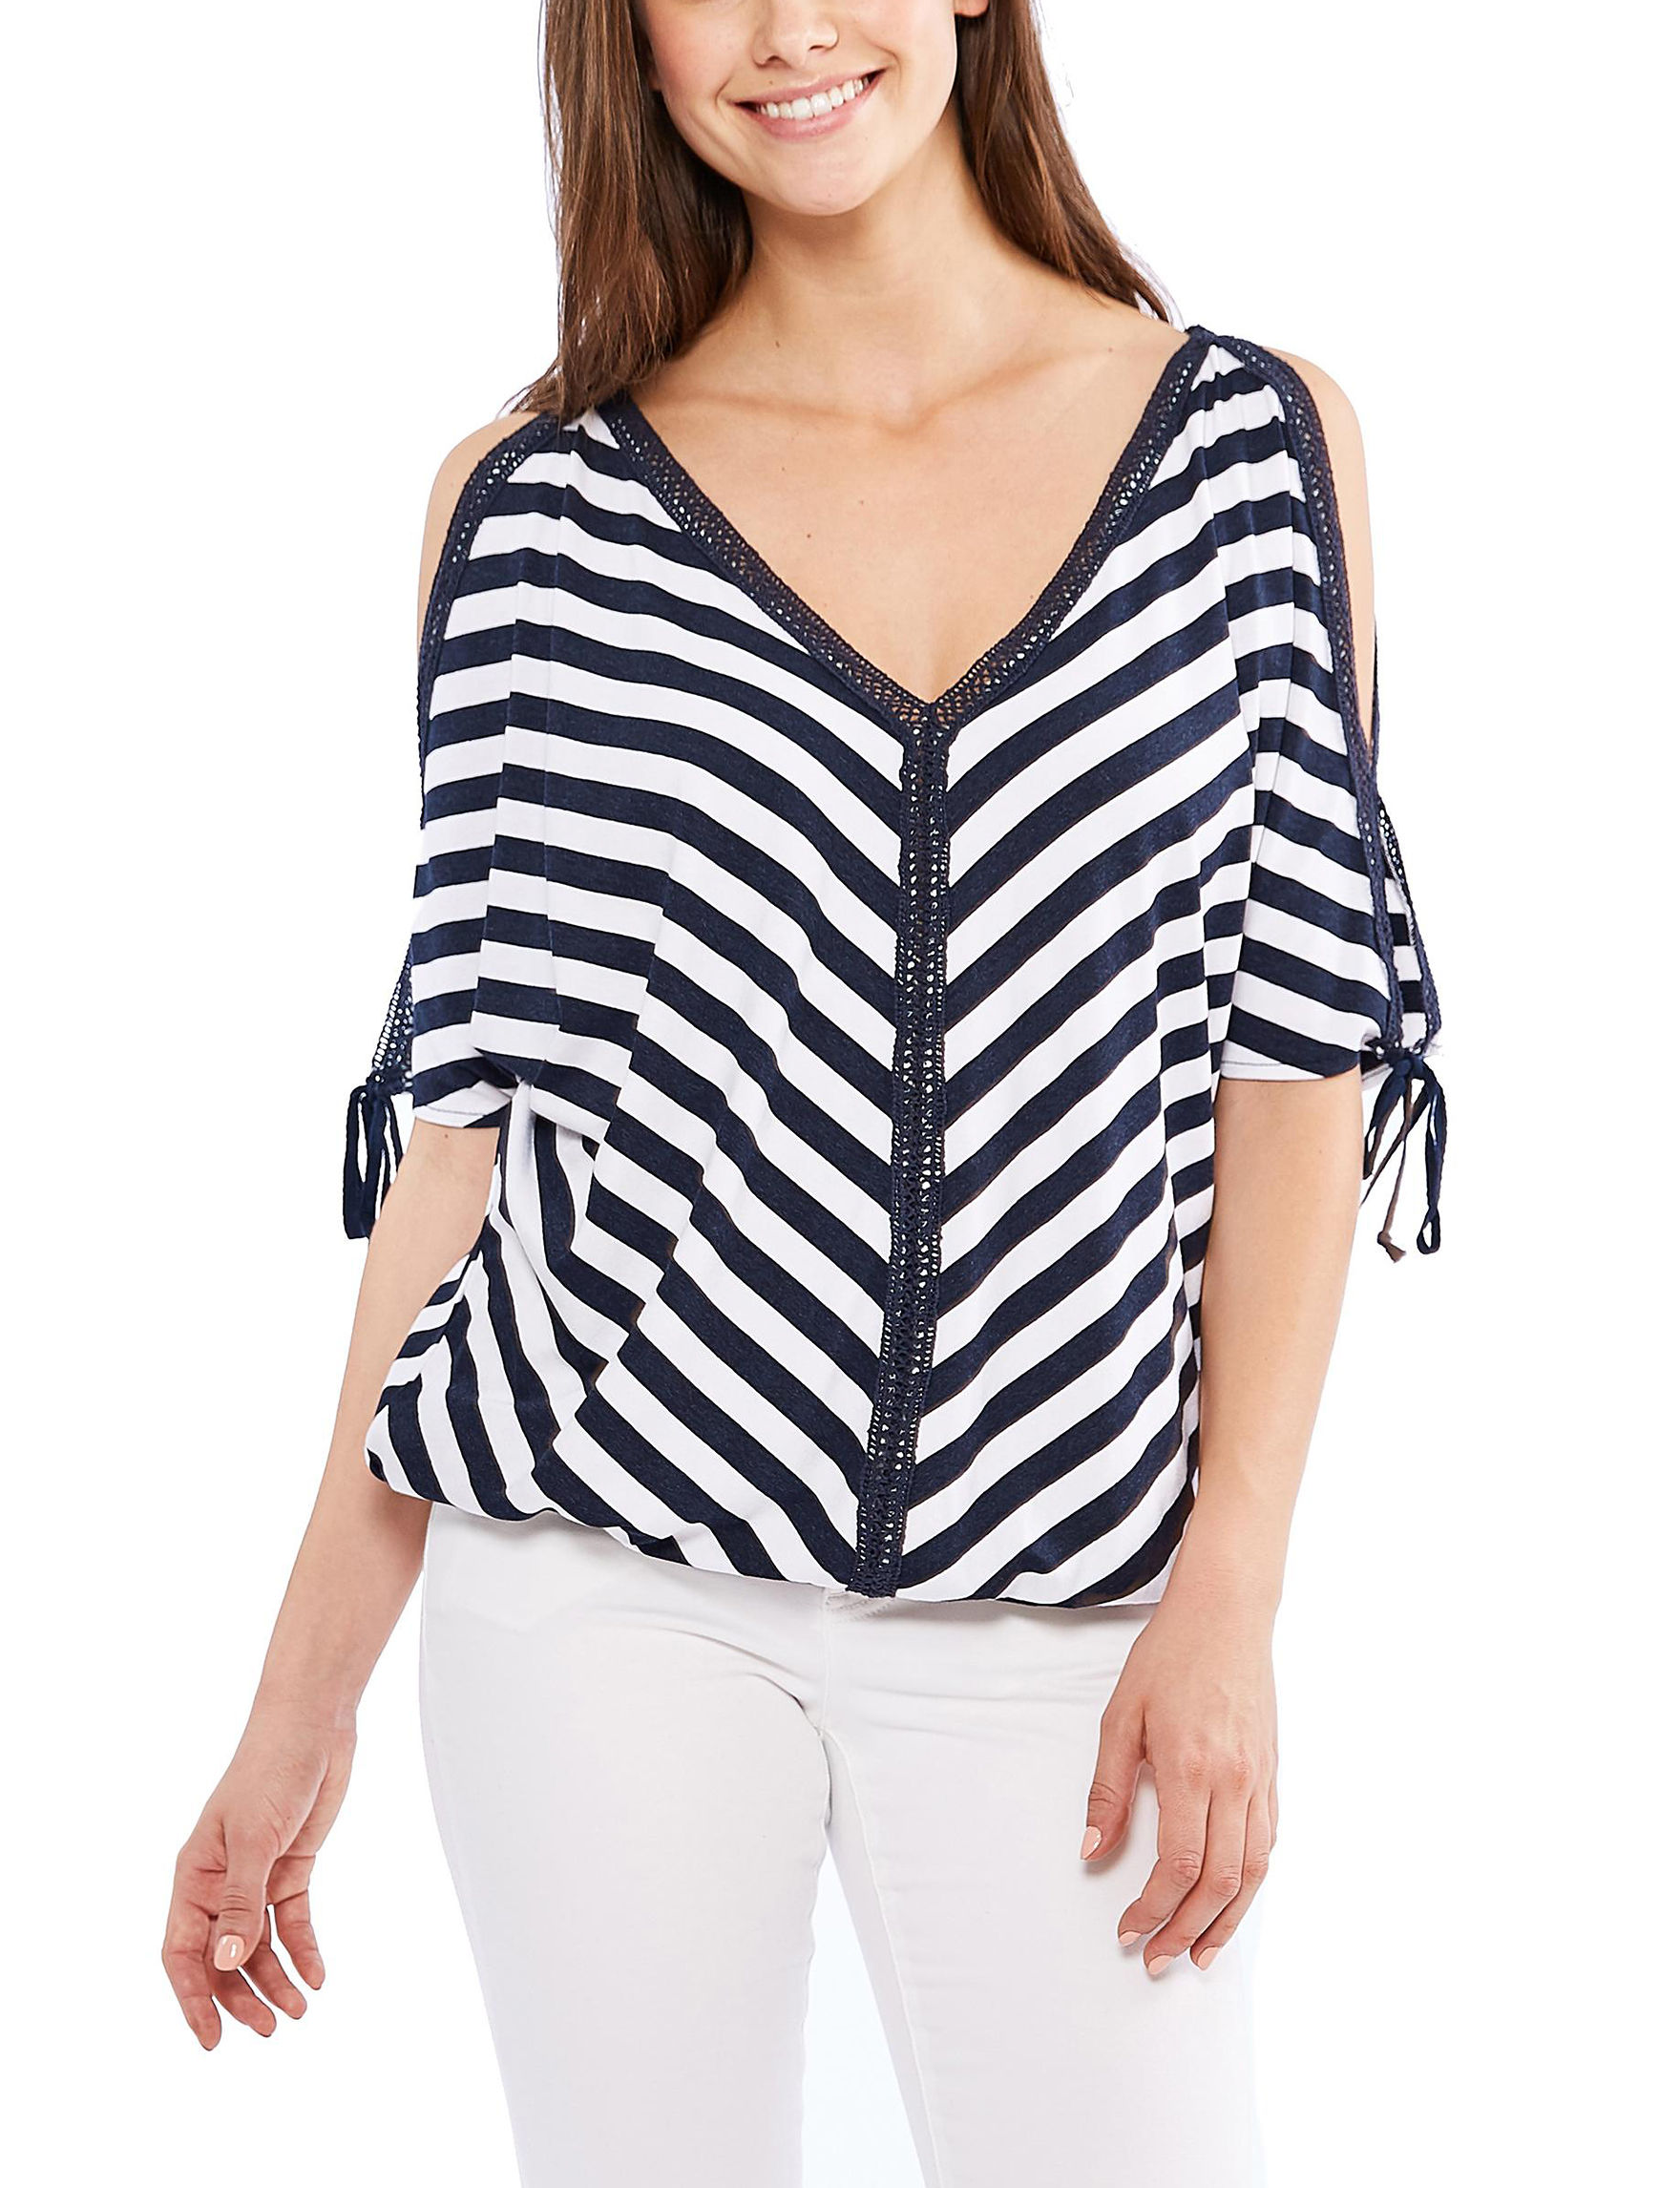 Skyes The Limit Navy / White Shirts & Blouses